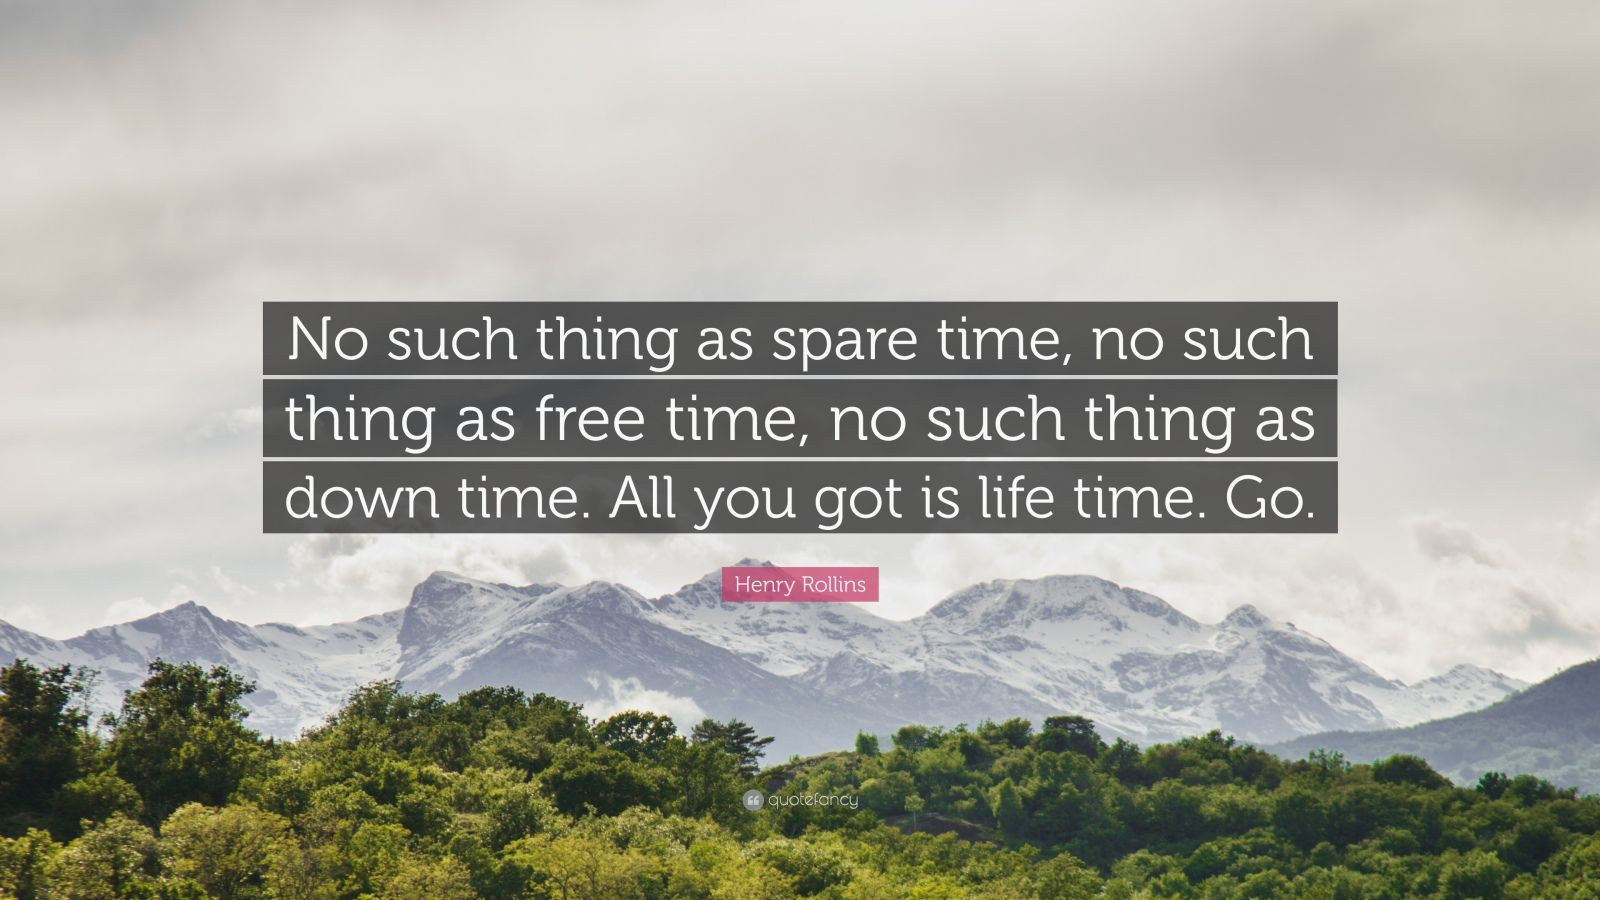 """Henry Rollins Quote: """"No such thing as spare time, no such thing as free time, no such thing as down time. All you got is life time. Go."""""""